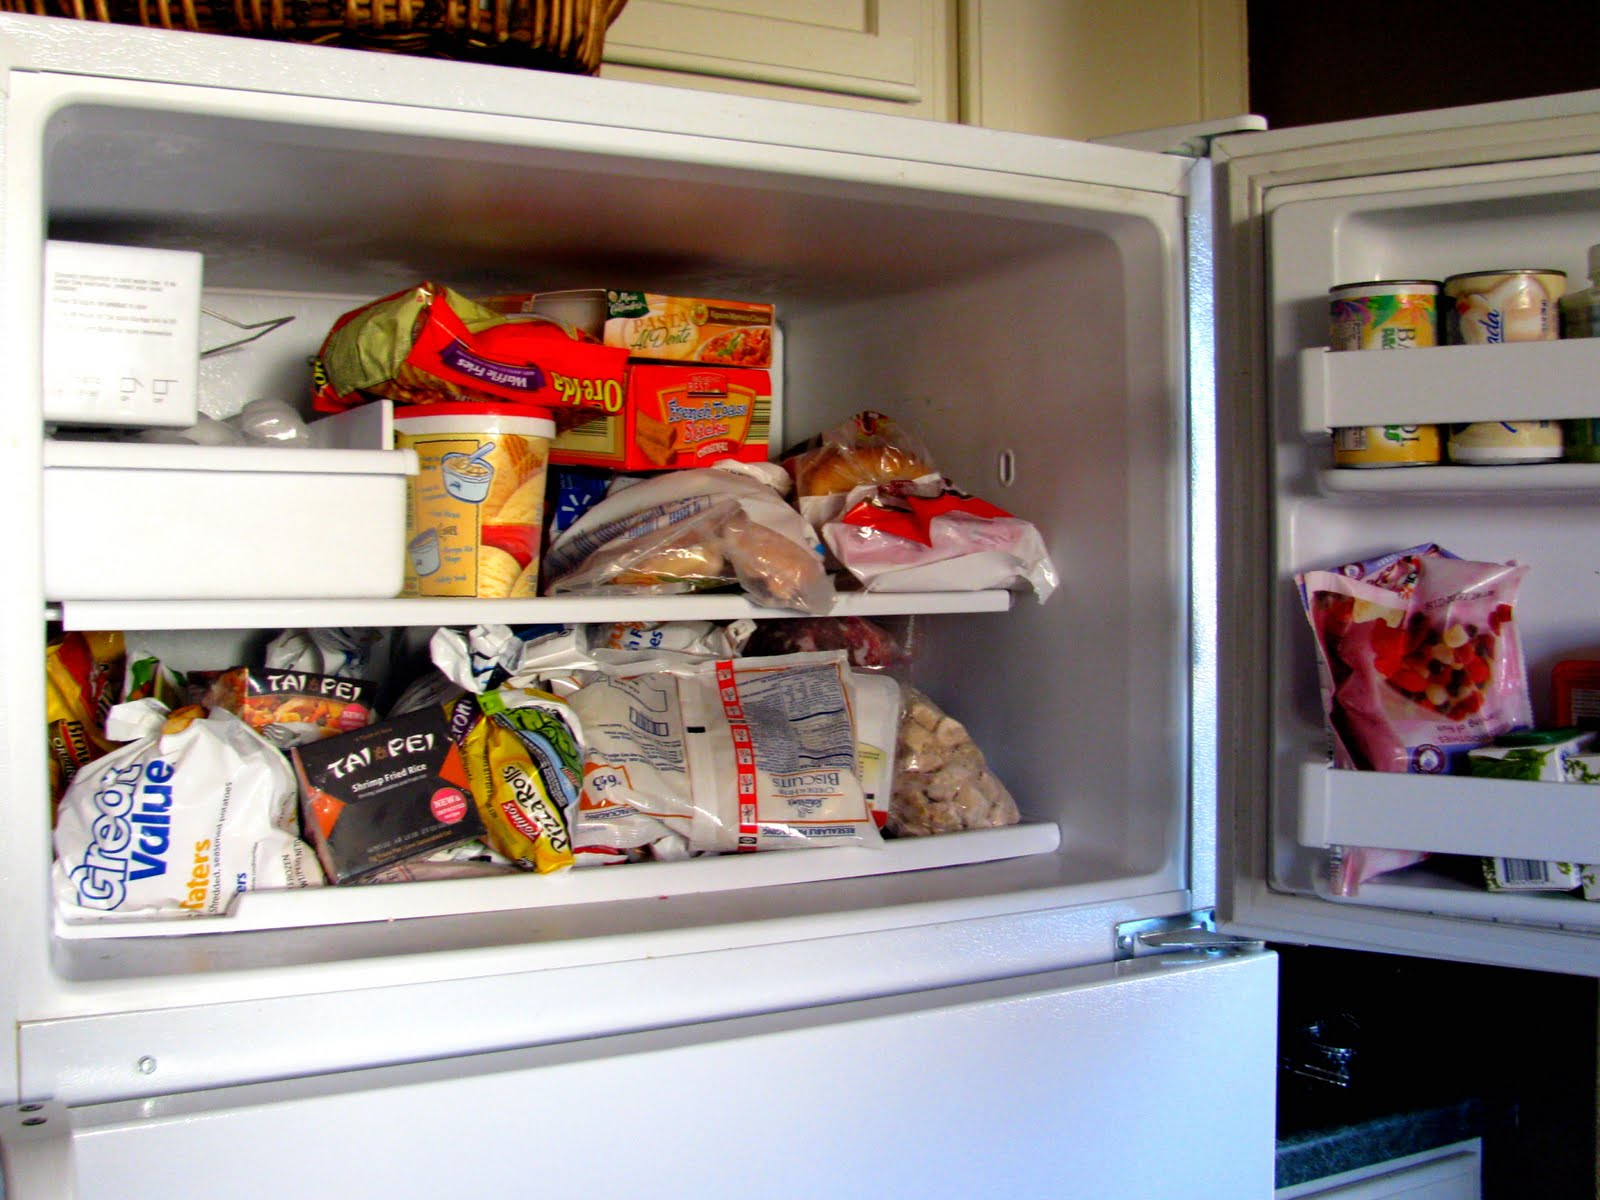 Chill Out And Call The Experts For Freezer Repairs